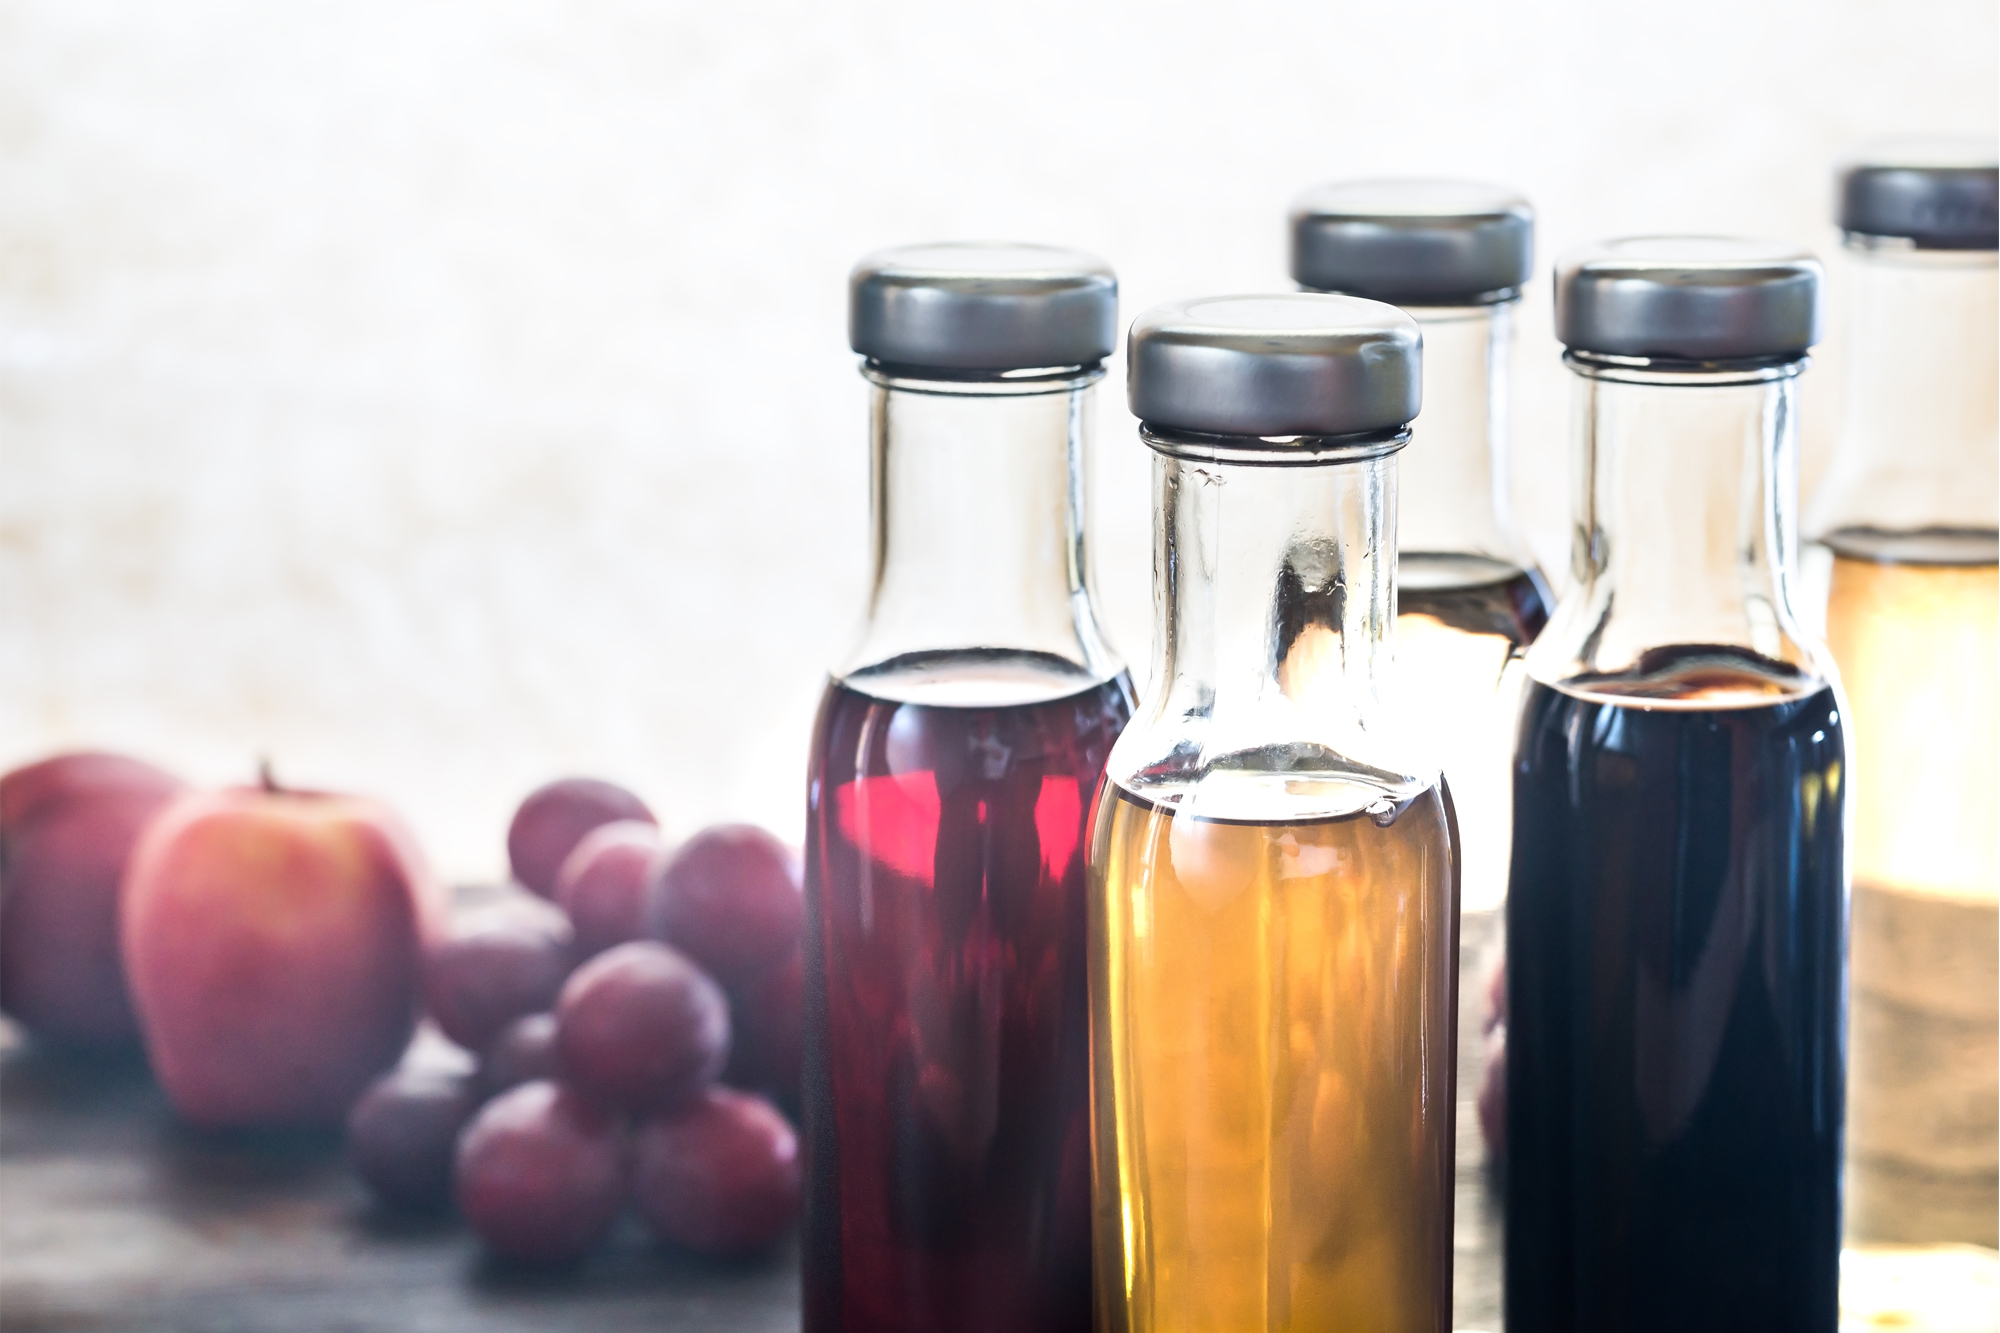 Vinegar is an important part of Italian culinary tradition: Italian ancestors exploited all its virtues as food, drink, aroma, antiseptic, sanitizer and they also invented the balsamic vinegar.